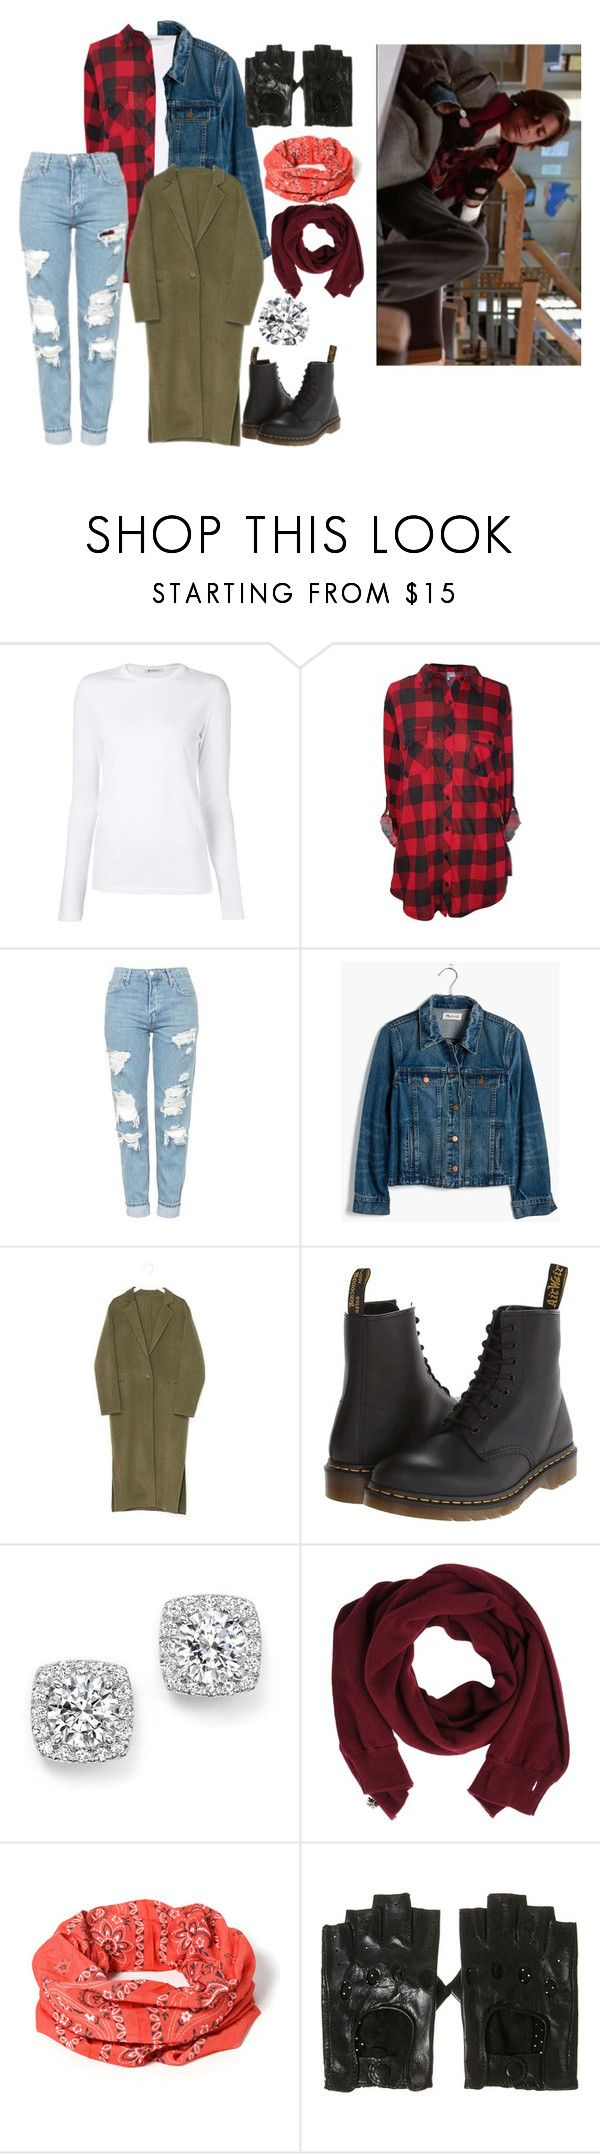 """""""John Bender"""" by annikabvb123 on Polyvore featuring T By Alexander Wang, Topshop, Madewell, Dr. Martens, Bloomingdale's and Pringle of Scotland"""